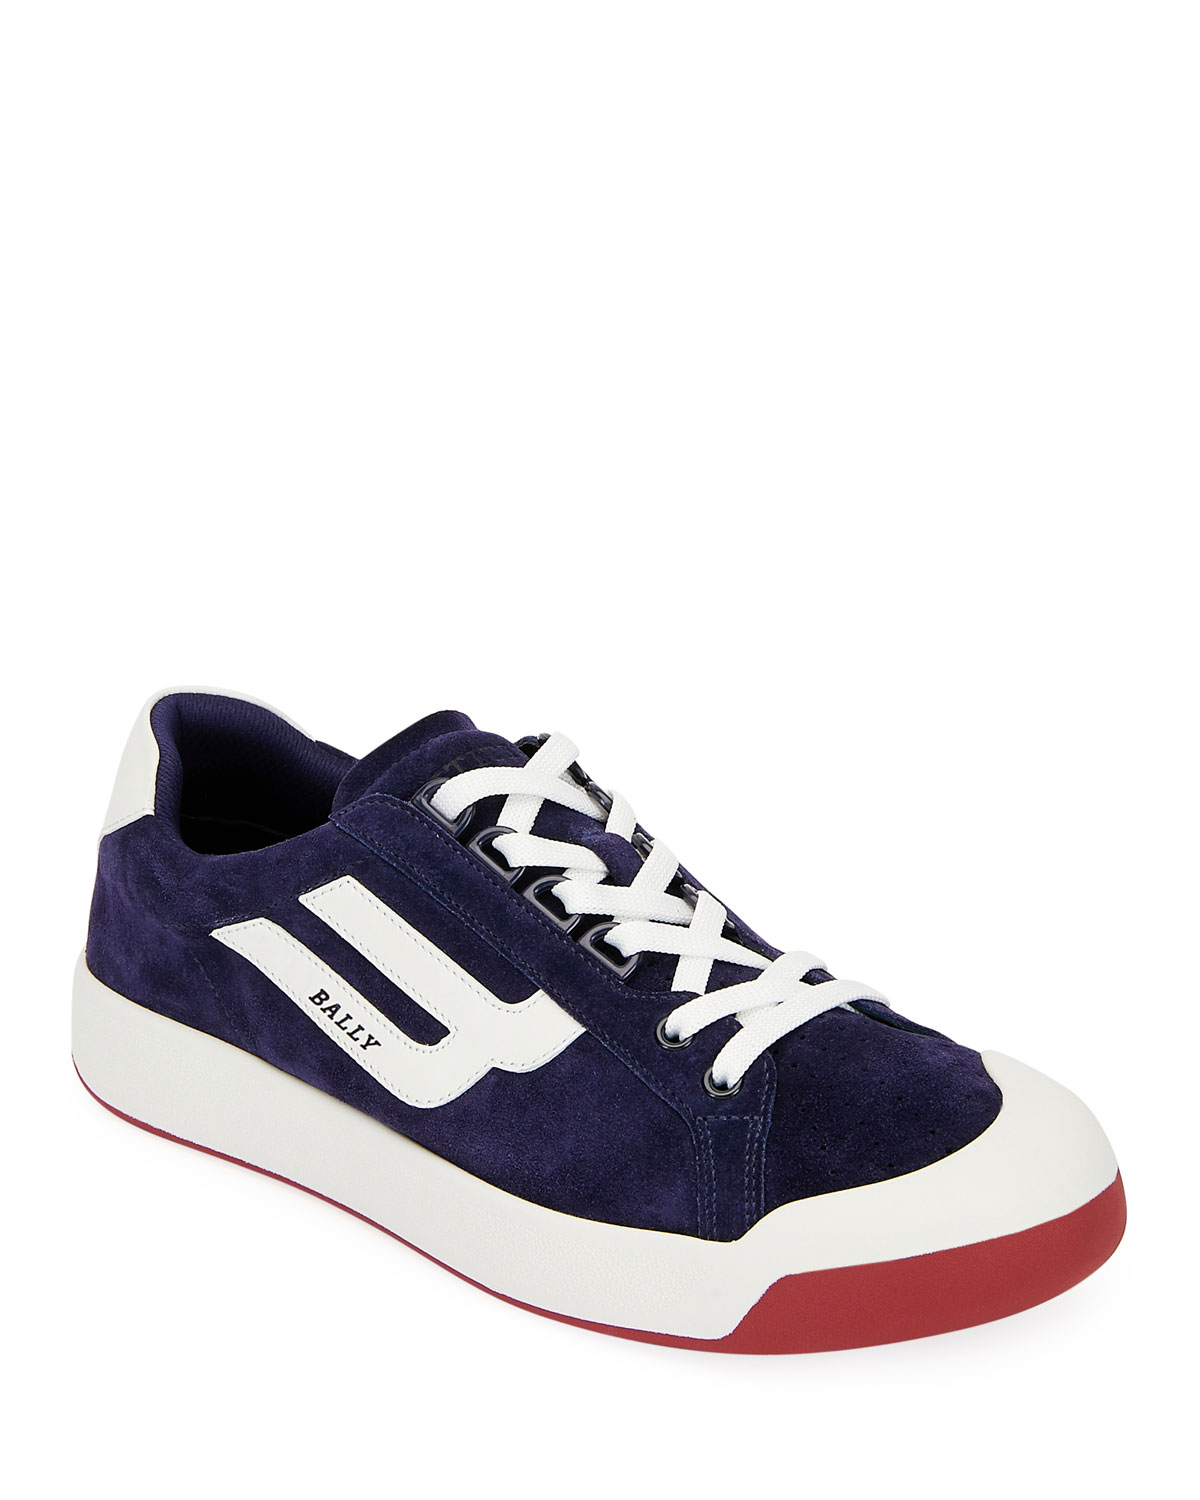 Bally Men's New Competition Suede Retro